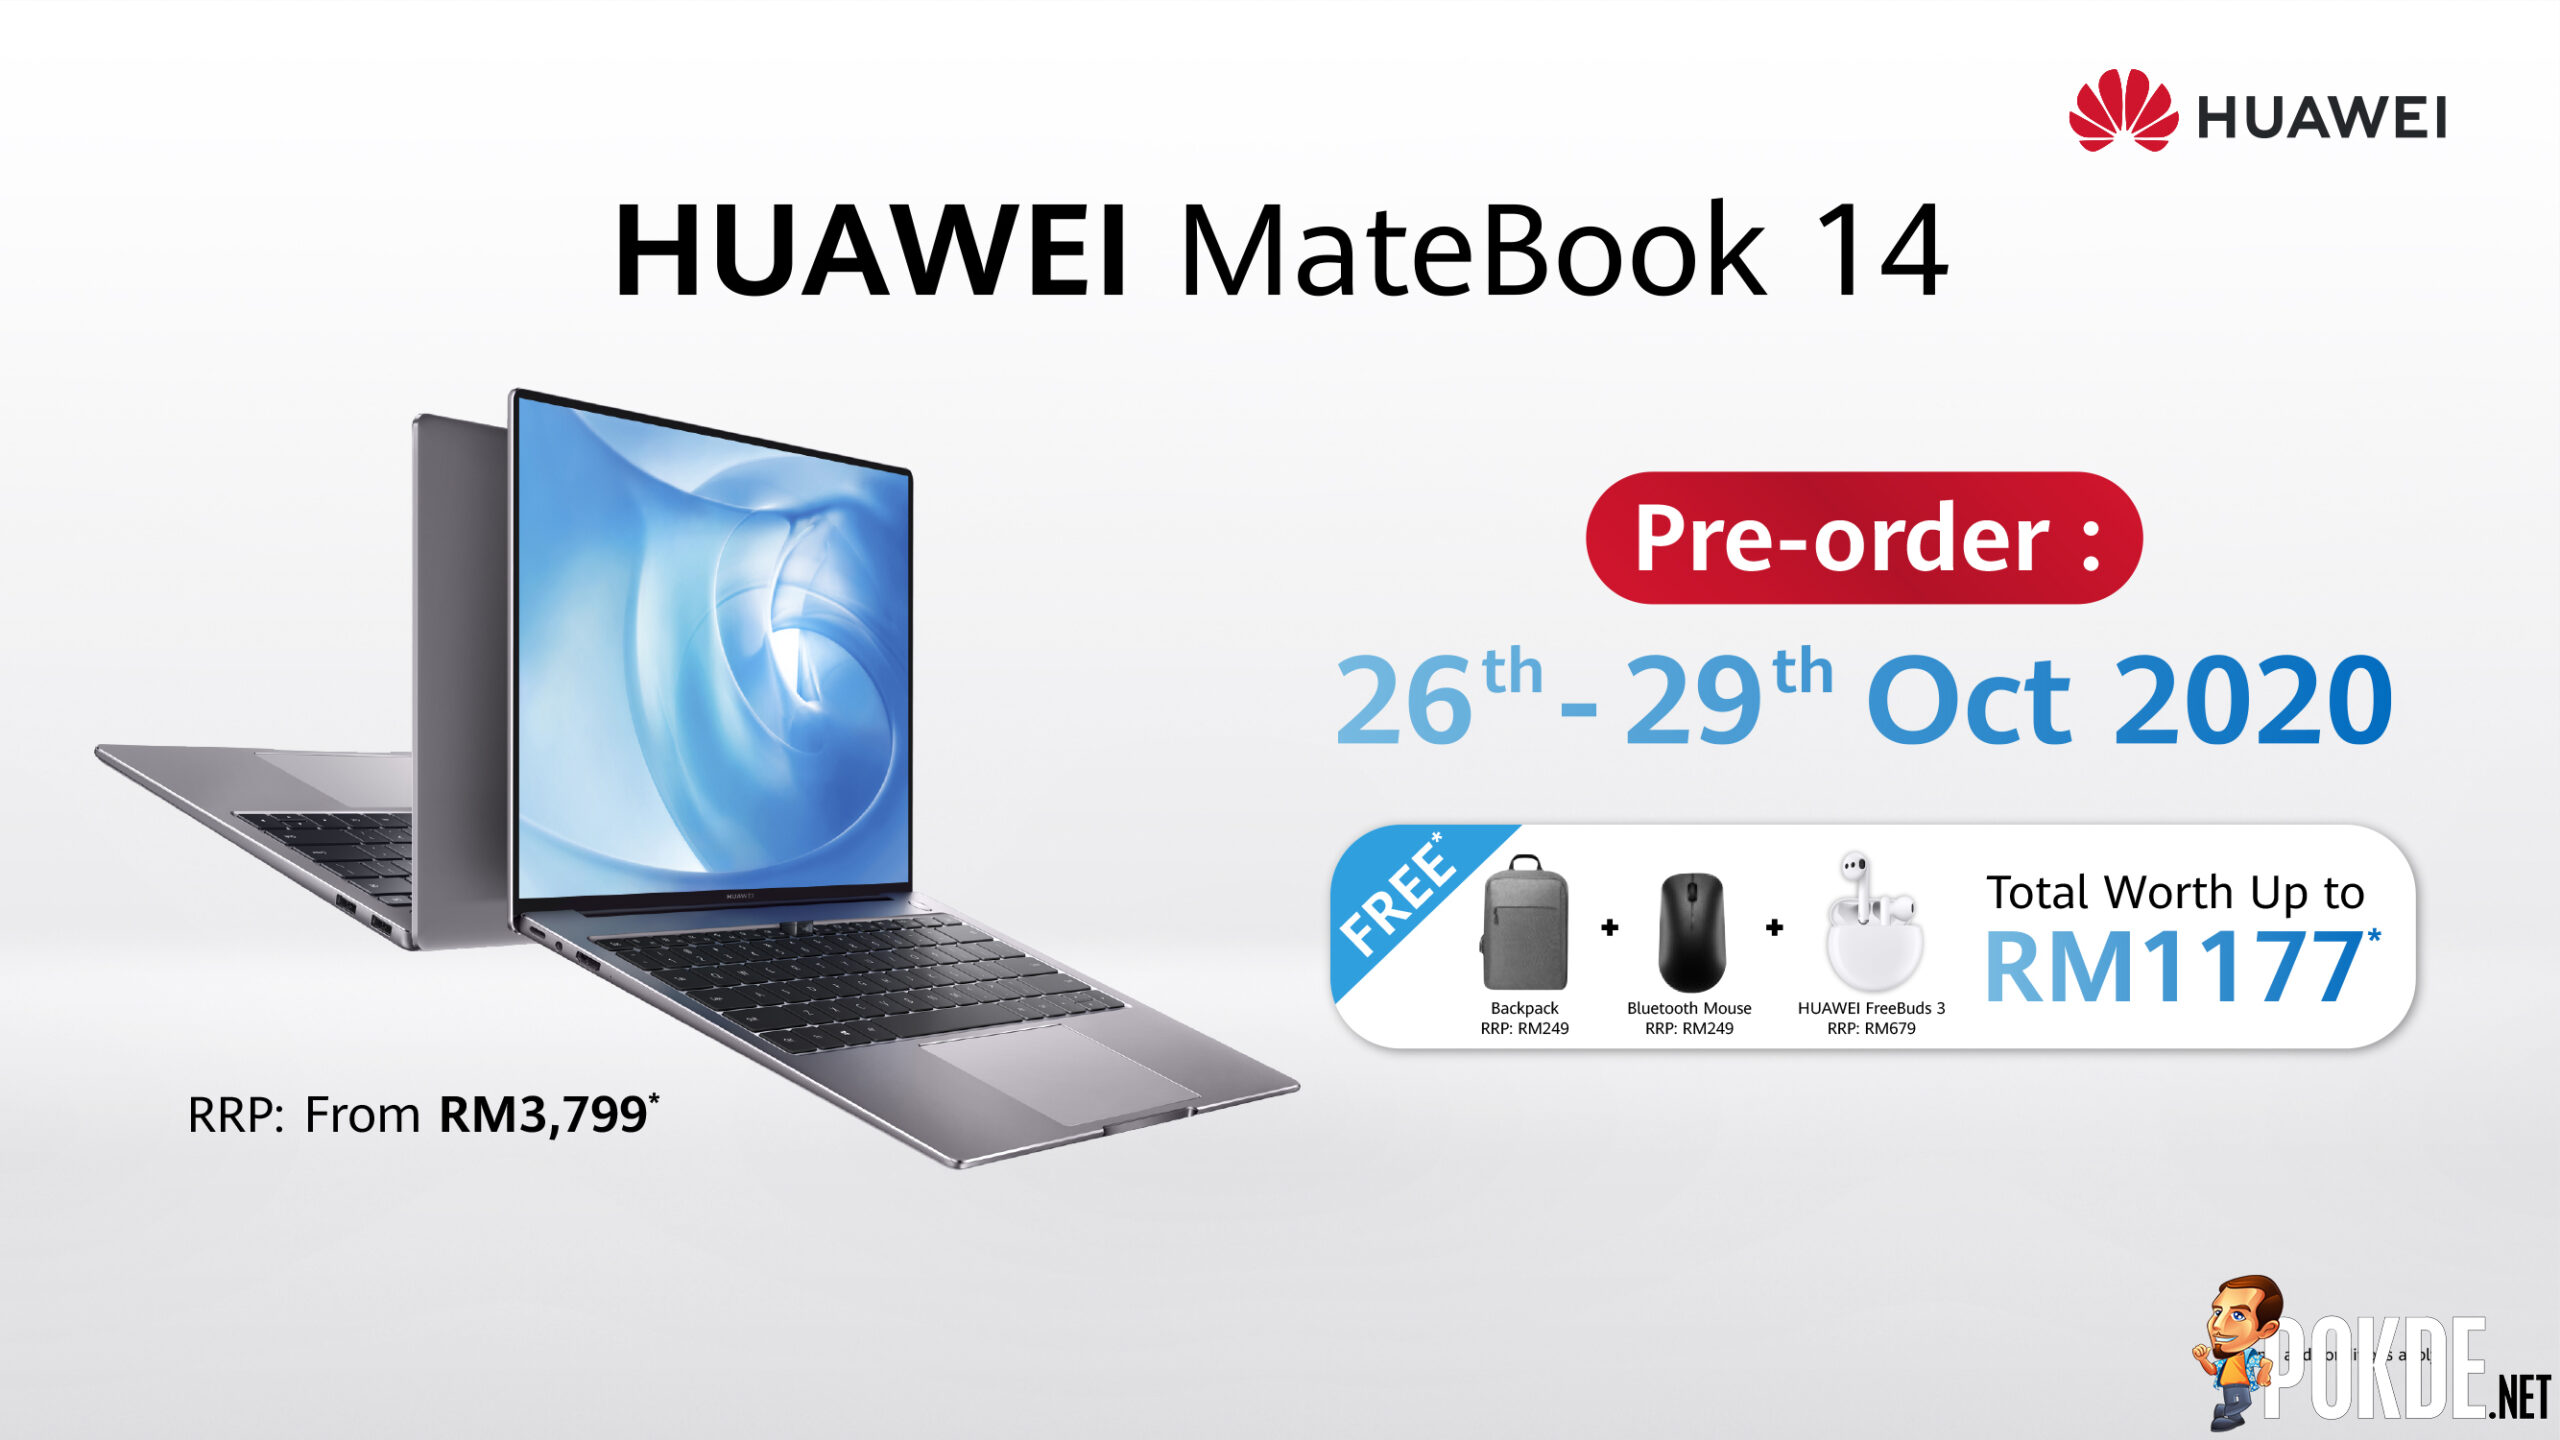 HUAWEI MateBook 14 Price and Pre-order